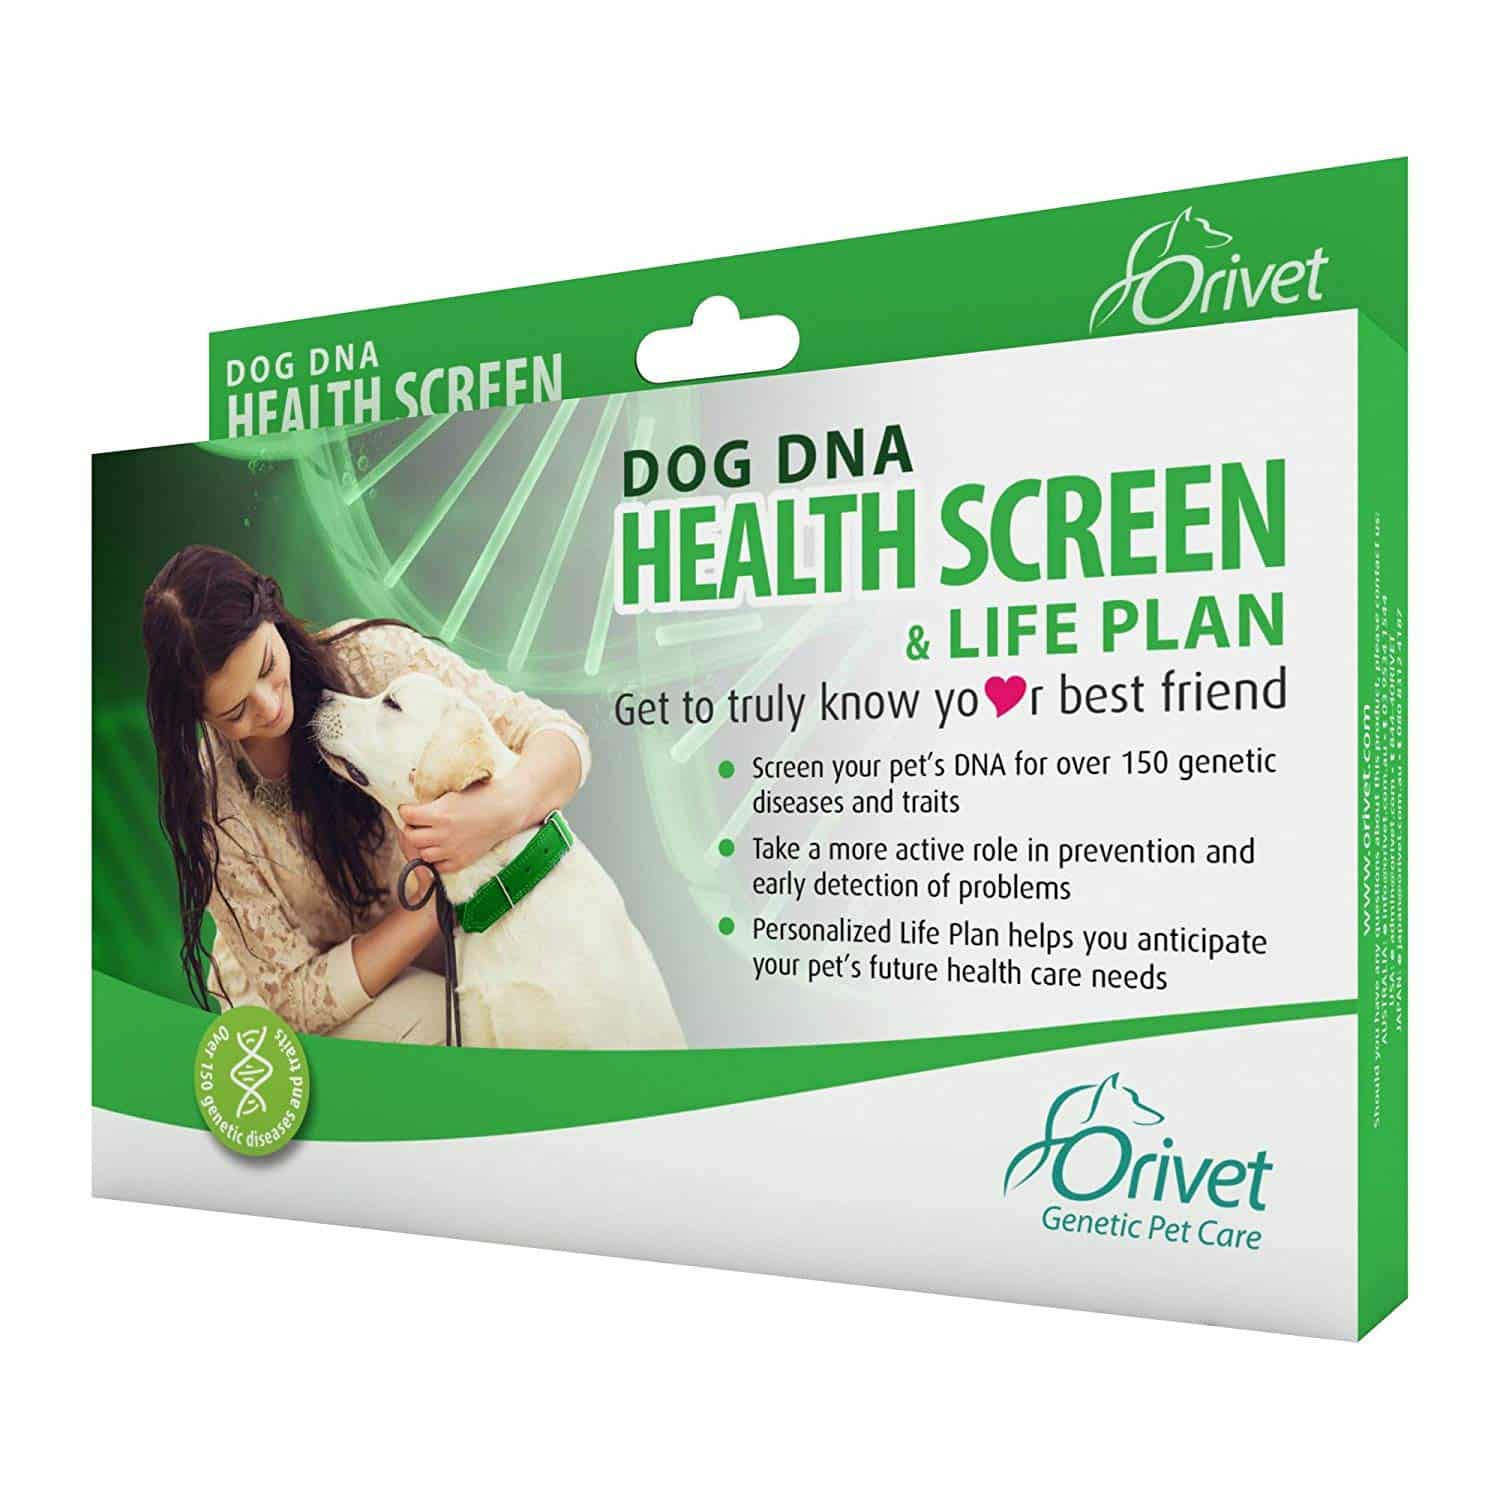 Orivet DNA Test Kit and Health Screen